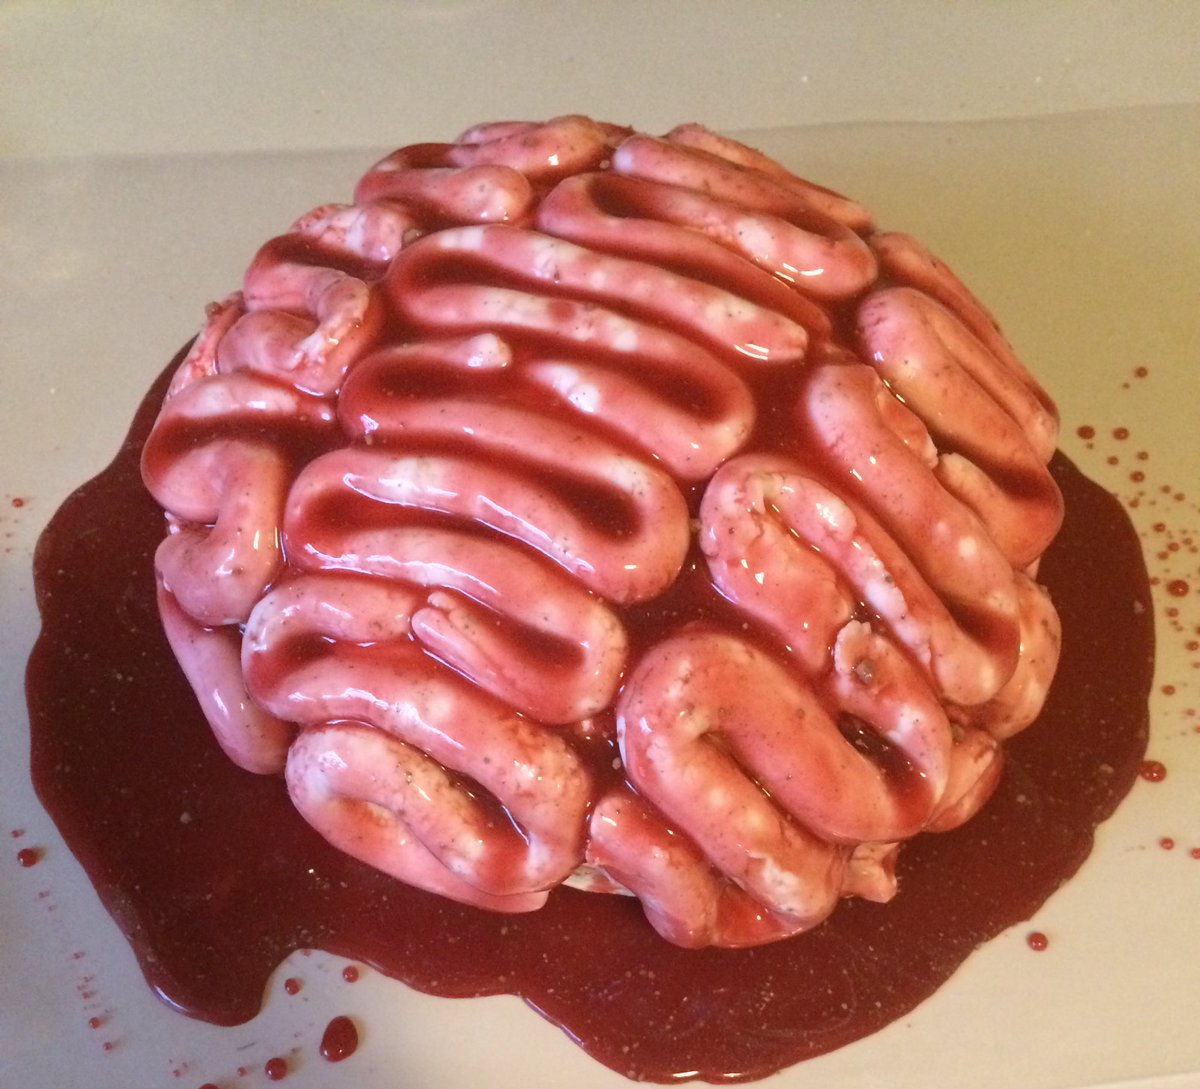 Lexi  F0 9f A5 80 On Twitter My Brain Cake In Celebration For The Thewalkingdead Coming Back On This Is From The Amazing Nerdynummies Cookbook